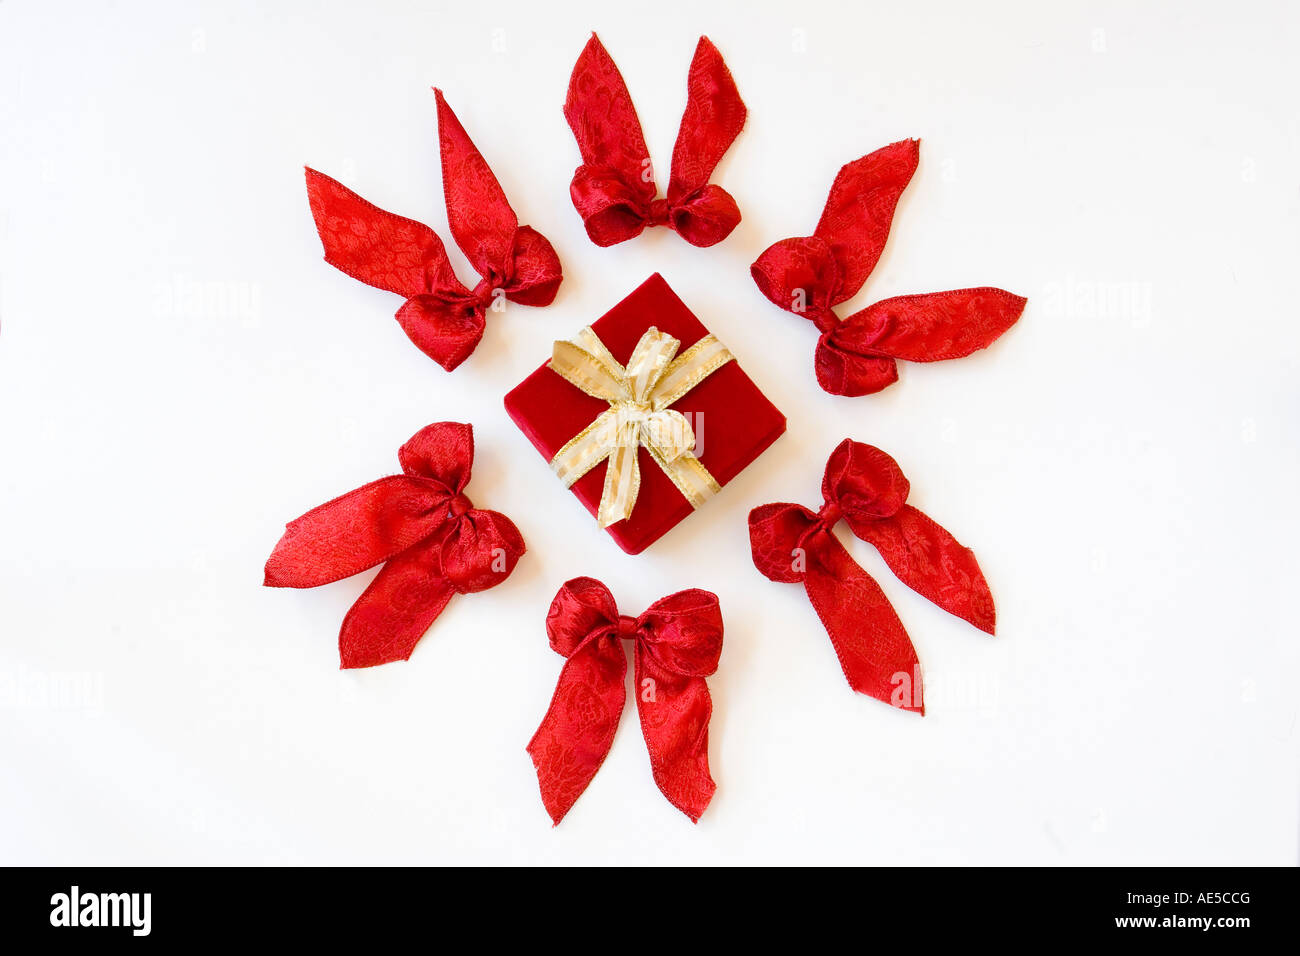 Christmas present wrapped in red velvet with gold ribbon and bow surrounded by circle of six red bows - Stock Image